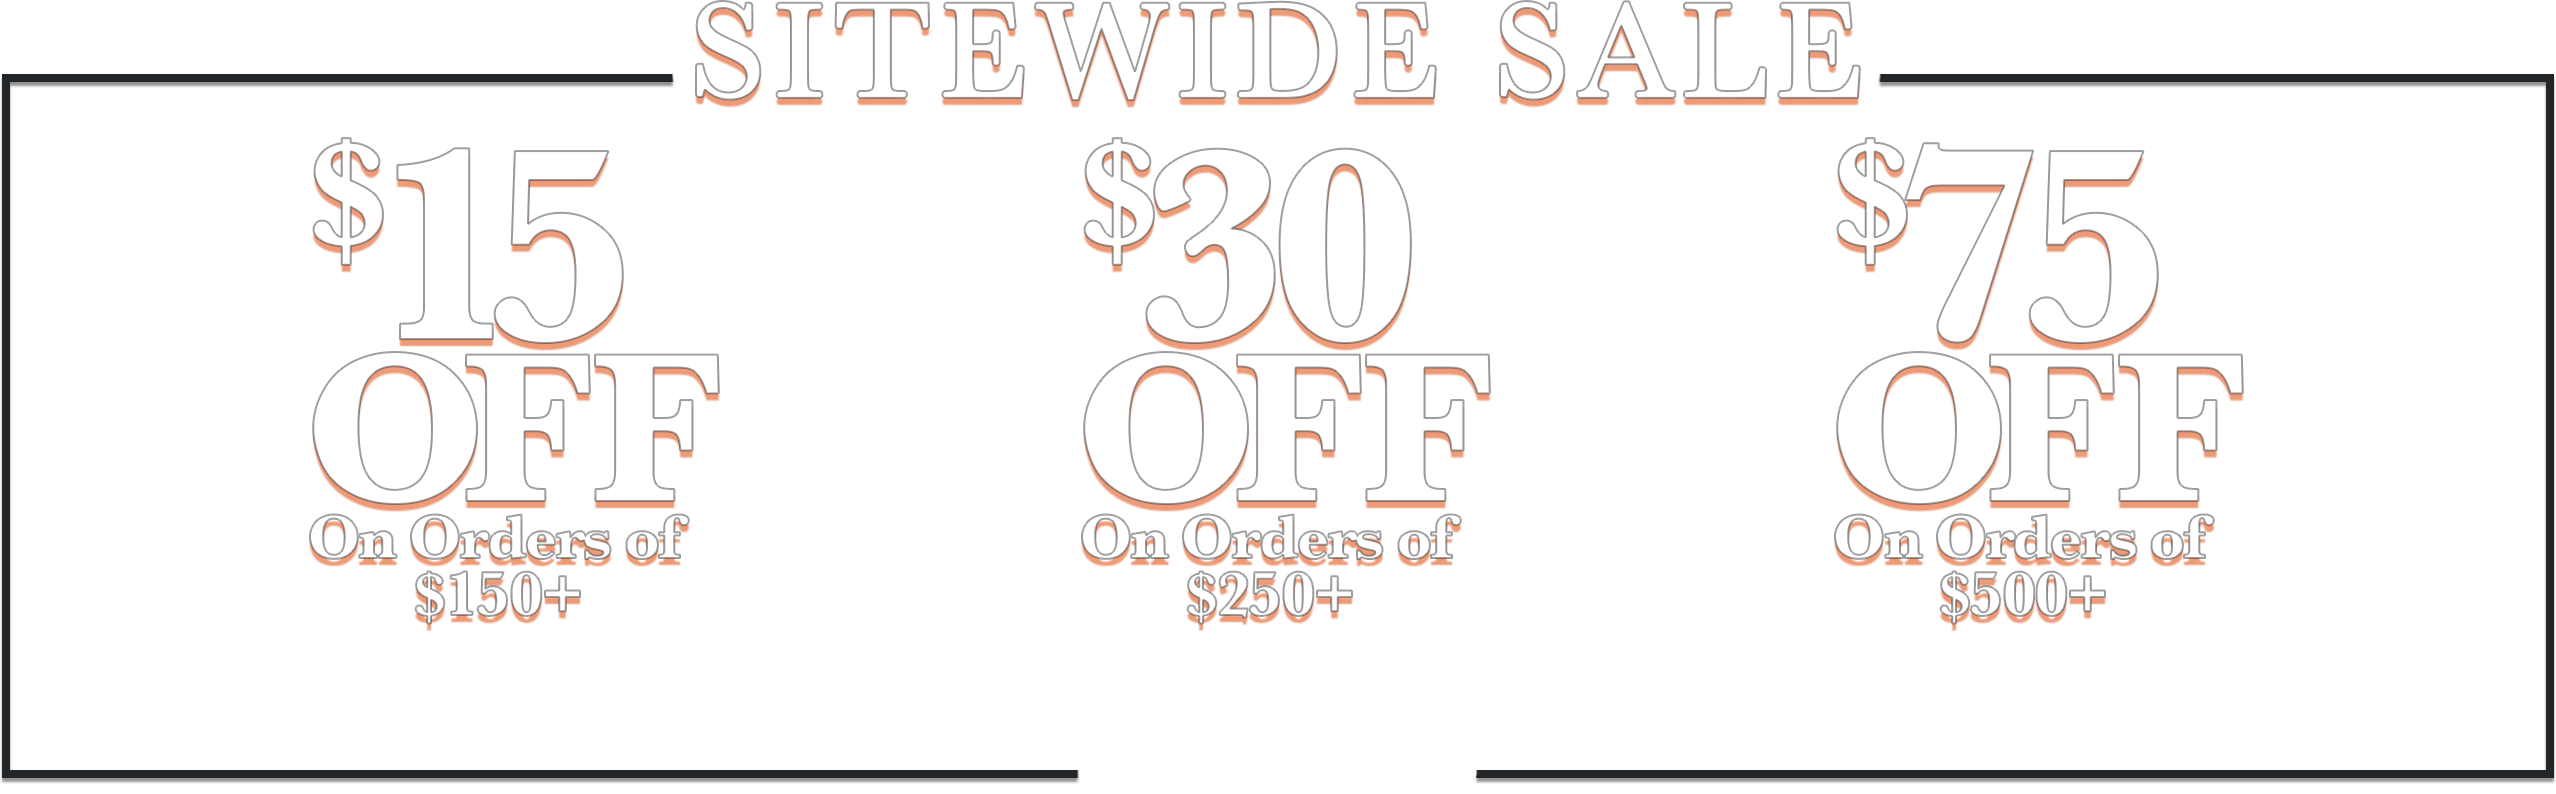 Sitewide Sale. $15 off one orders of $150+. Use code: LD-15. $30 off orders of $250+. Use code: LD-30. $75 off orders of $500+. Use code: LD-75. Ends 10/31.